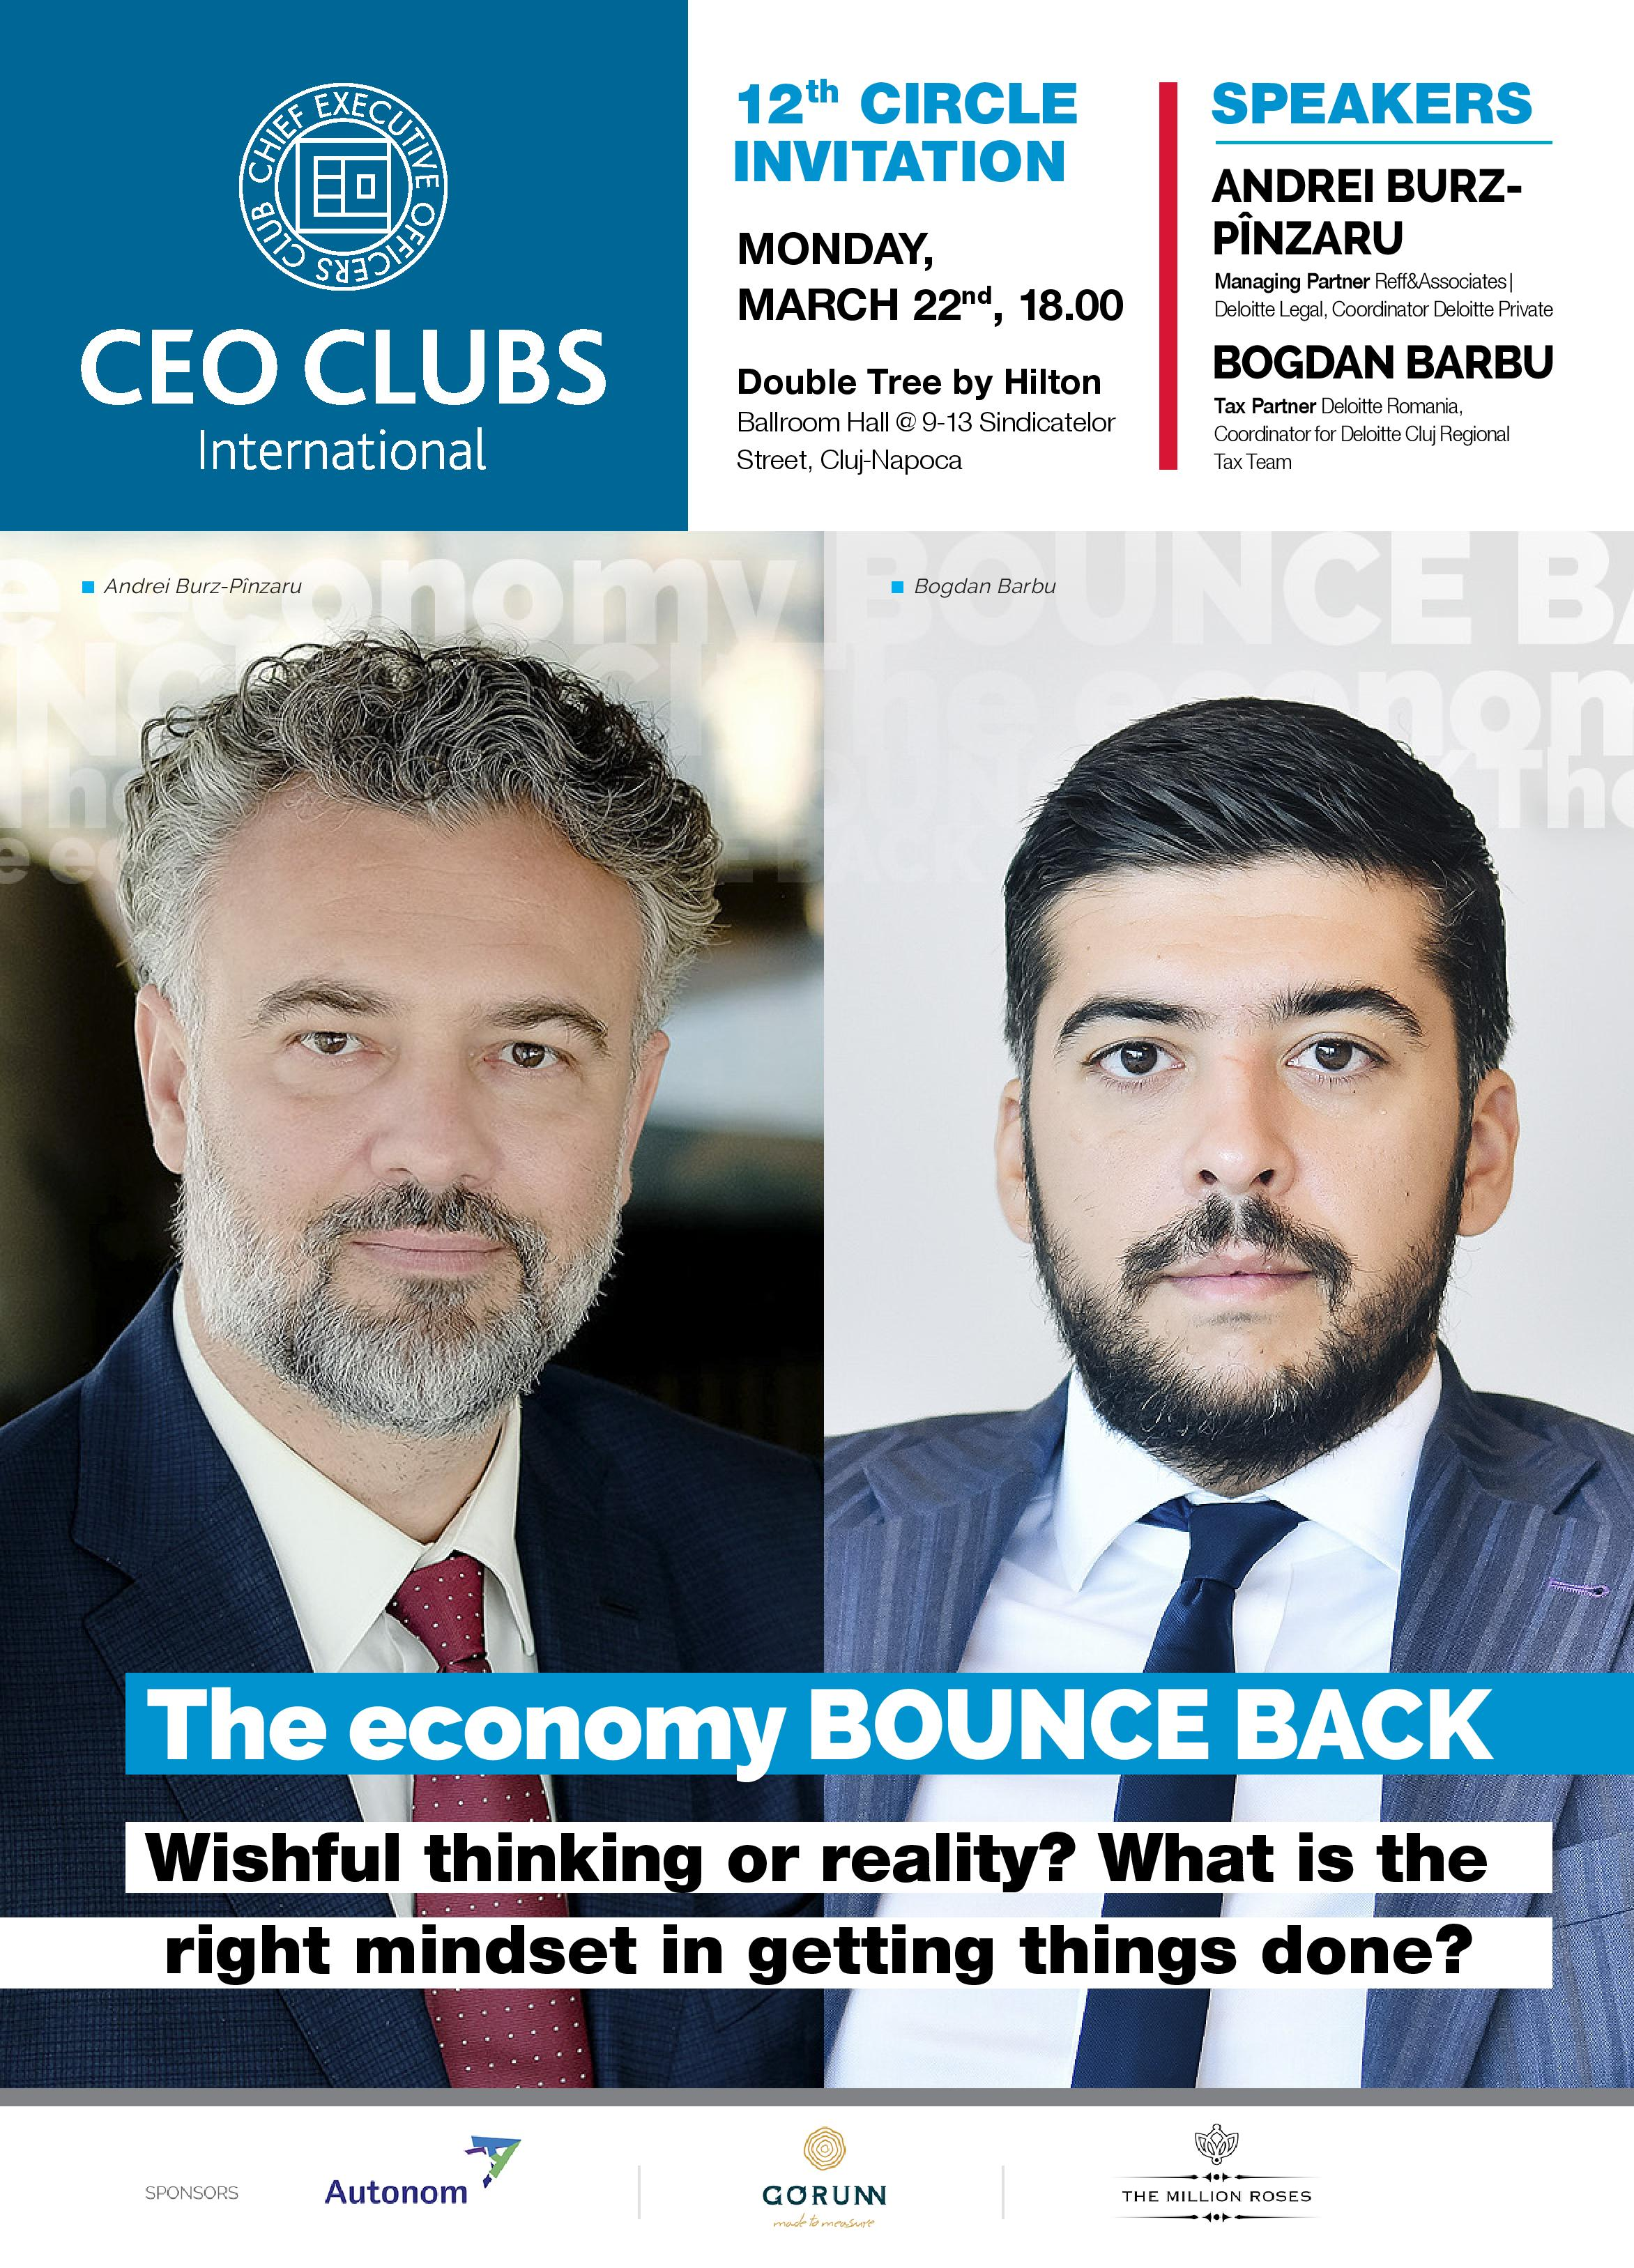 12th Circle: The Economy BOUNCE BACK